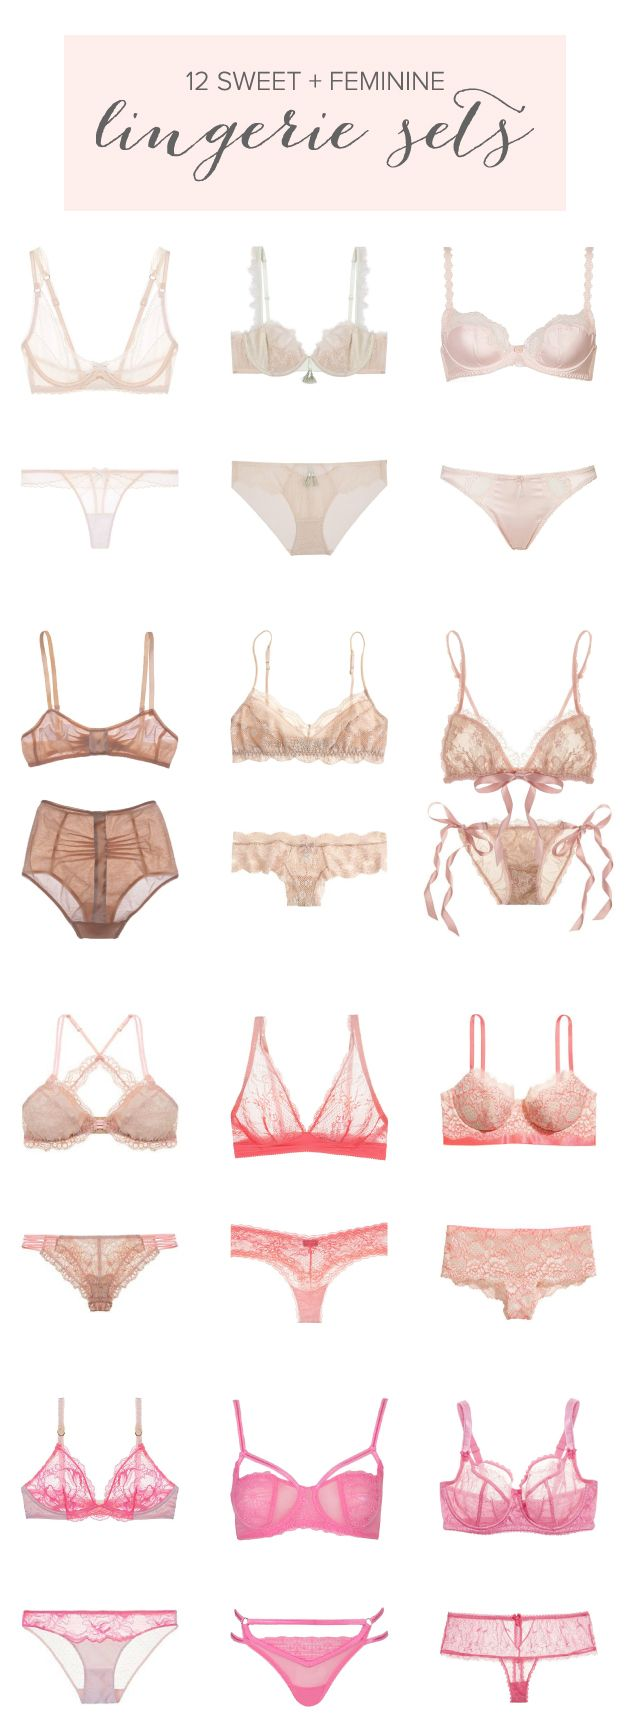 12 Sweet & Feminine Lingerie Sets for Valentine's Day/honeymoon/whenever!